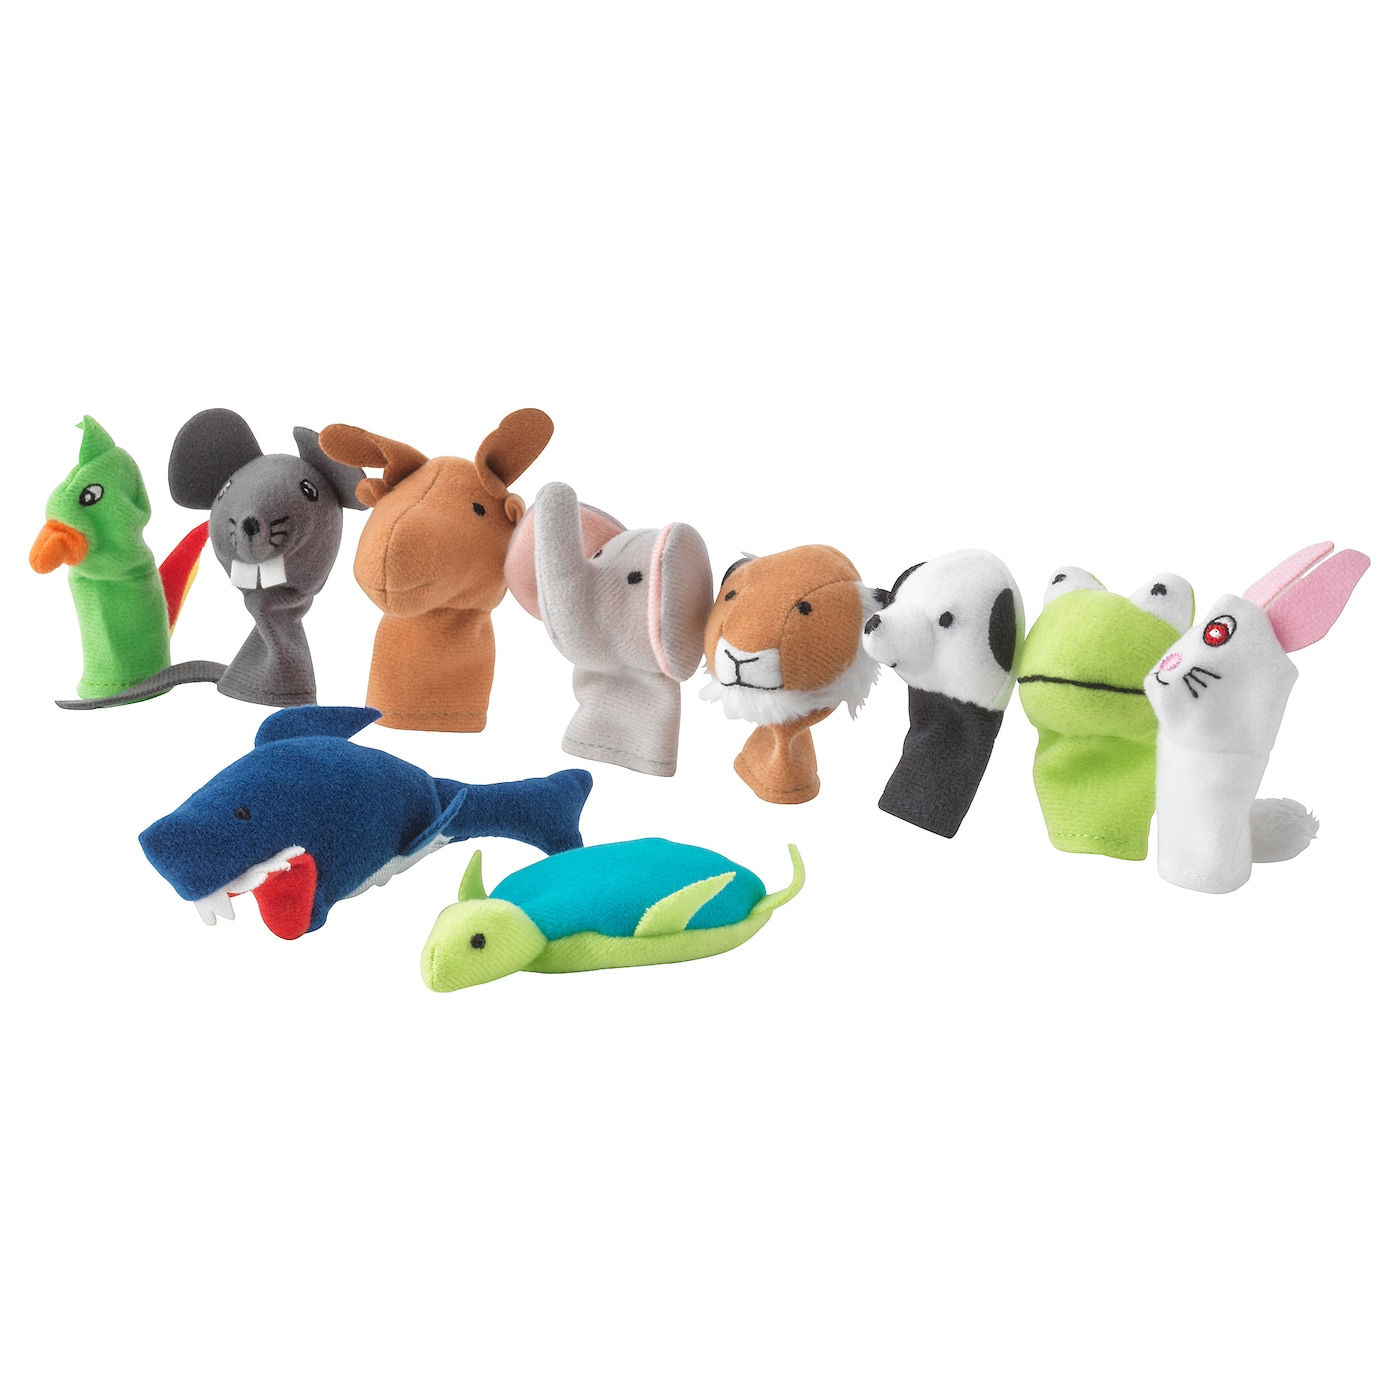 IKEA TITTA DJUR finger puppet One size, suitable for both small and large fingers.